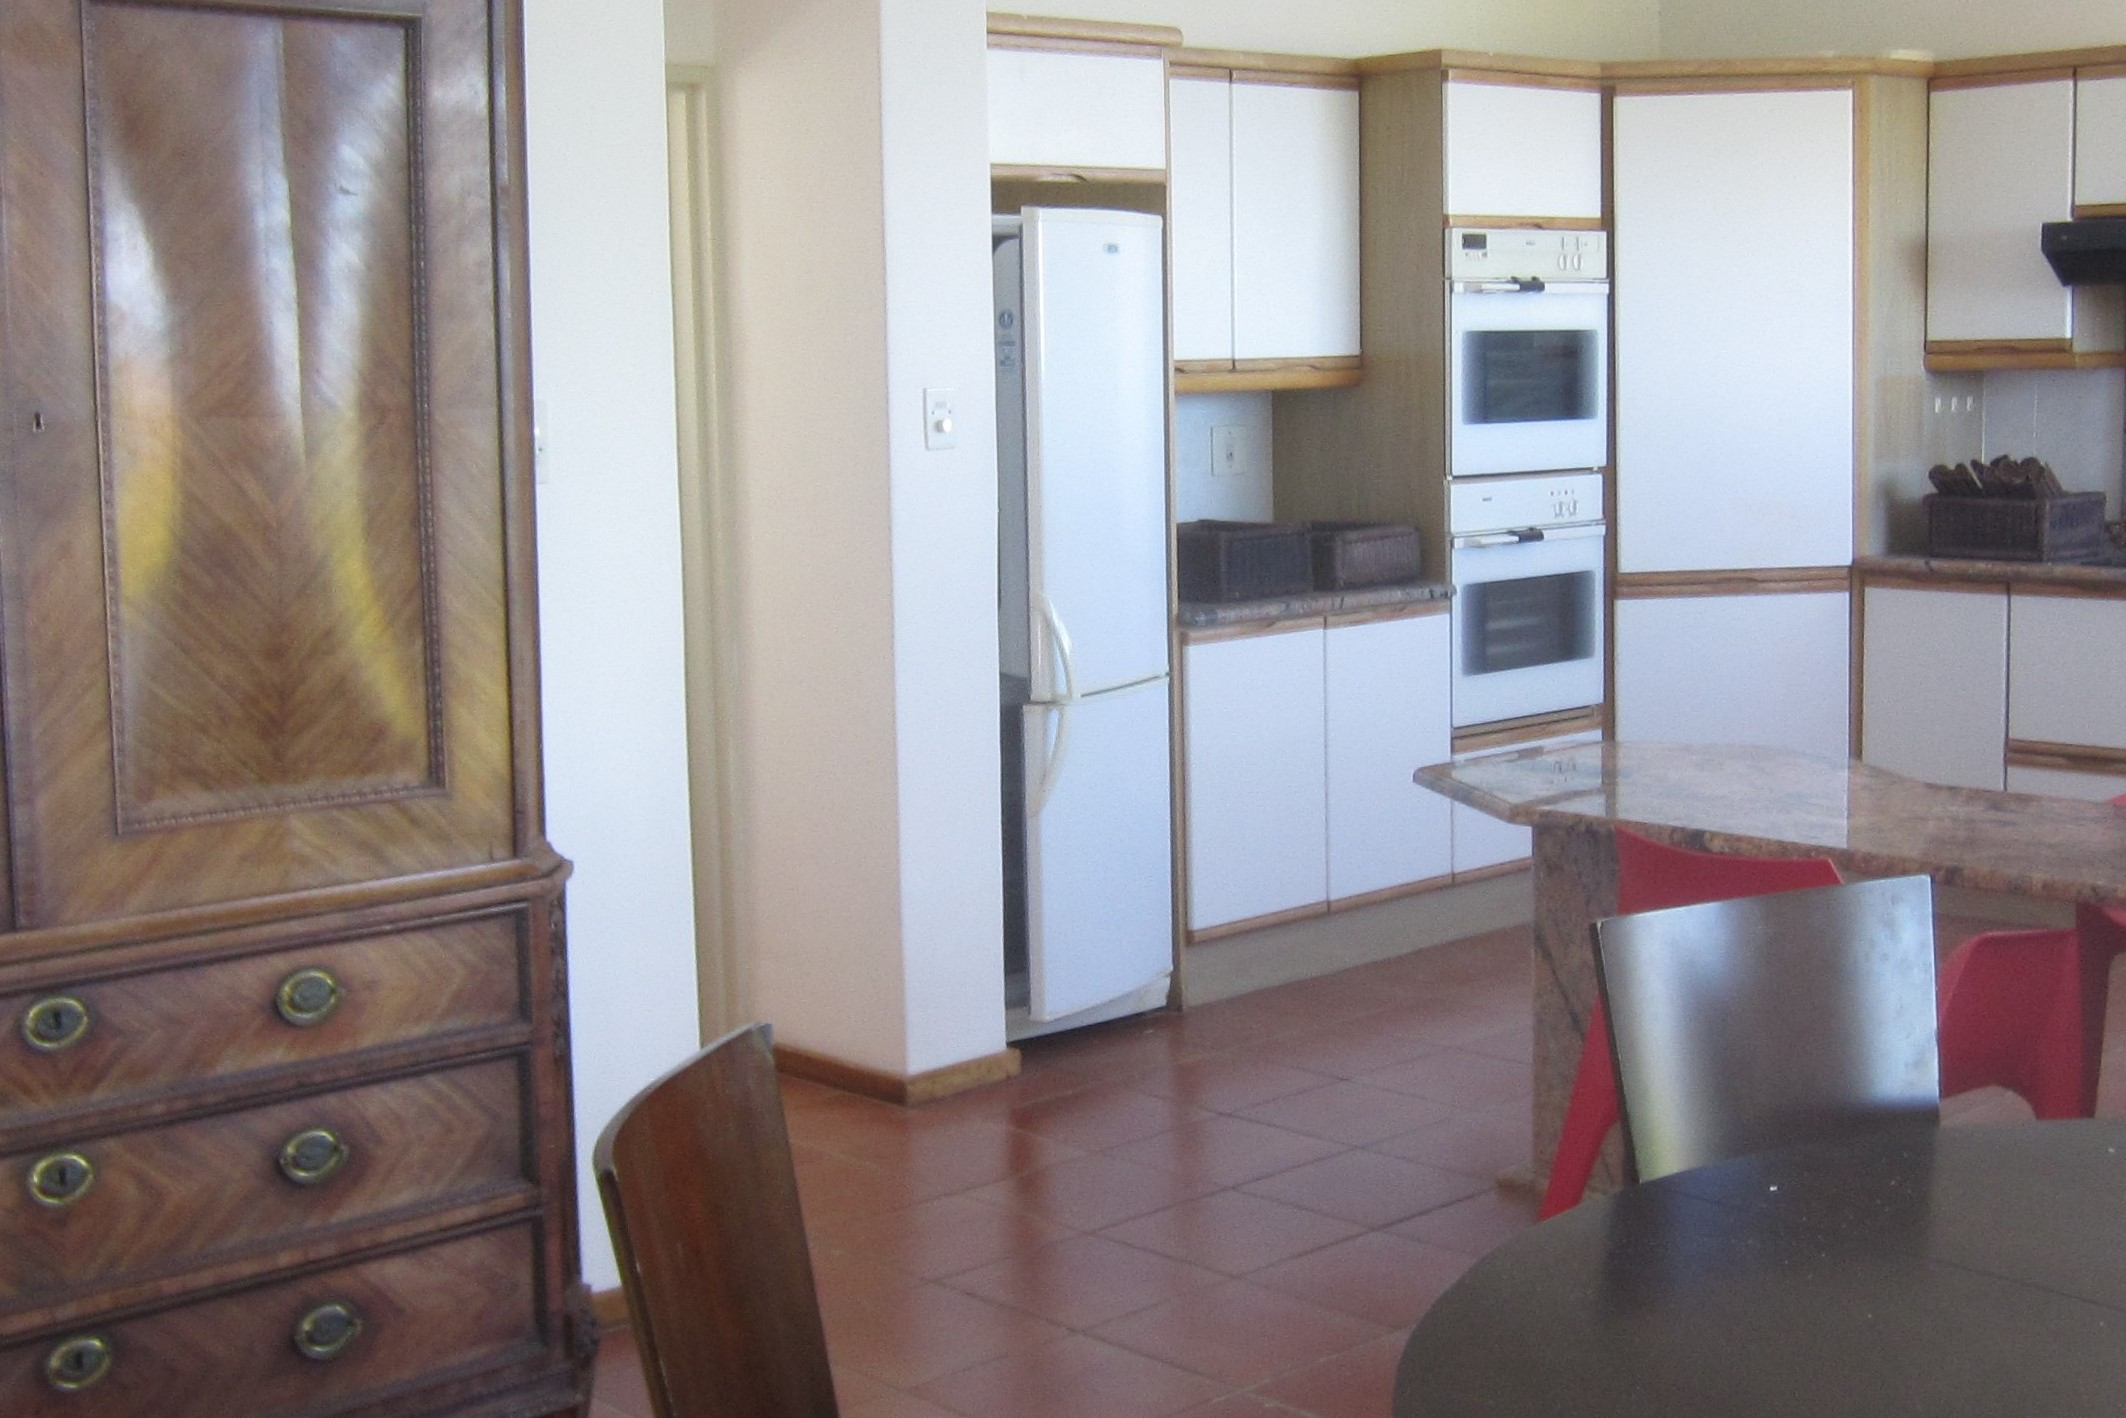 3 Bedroom House for sale in Monte Sereno ENT0015864 : photo#4